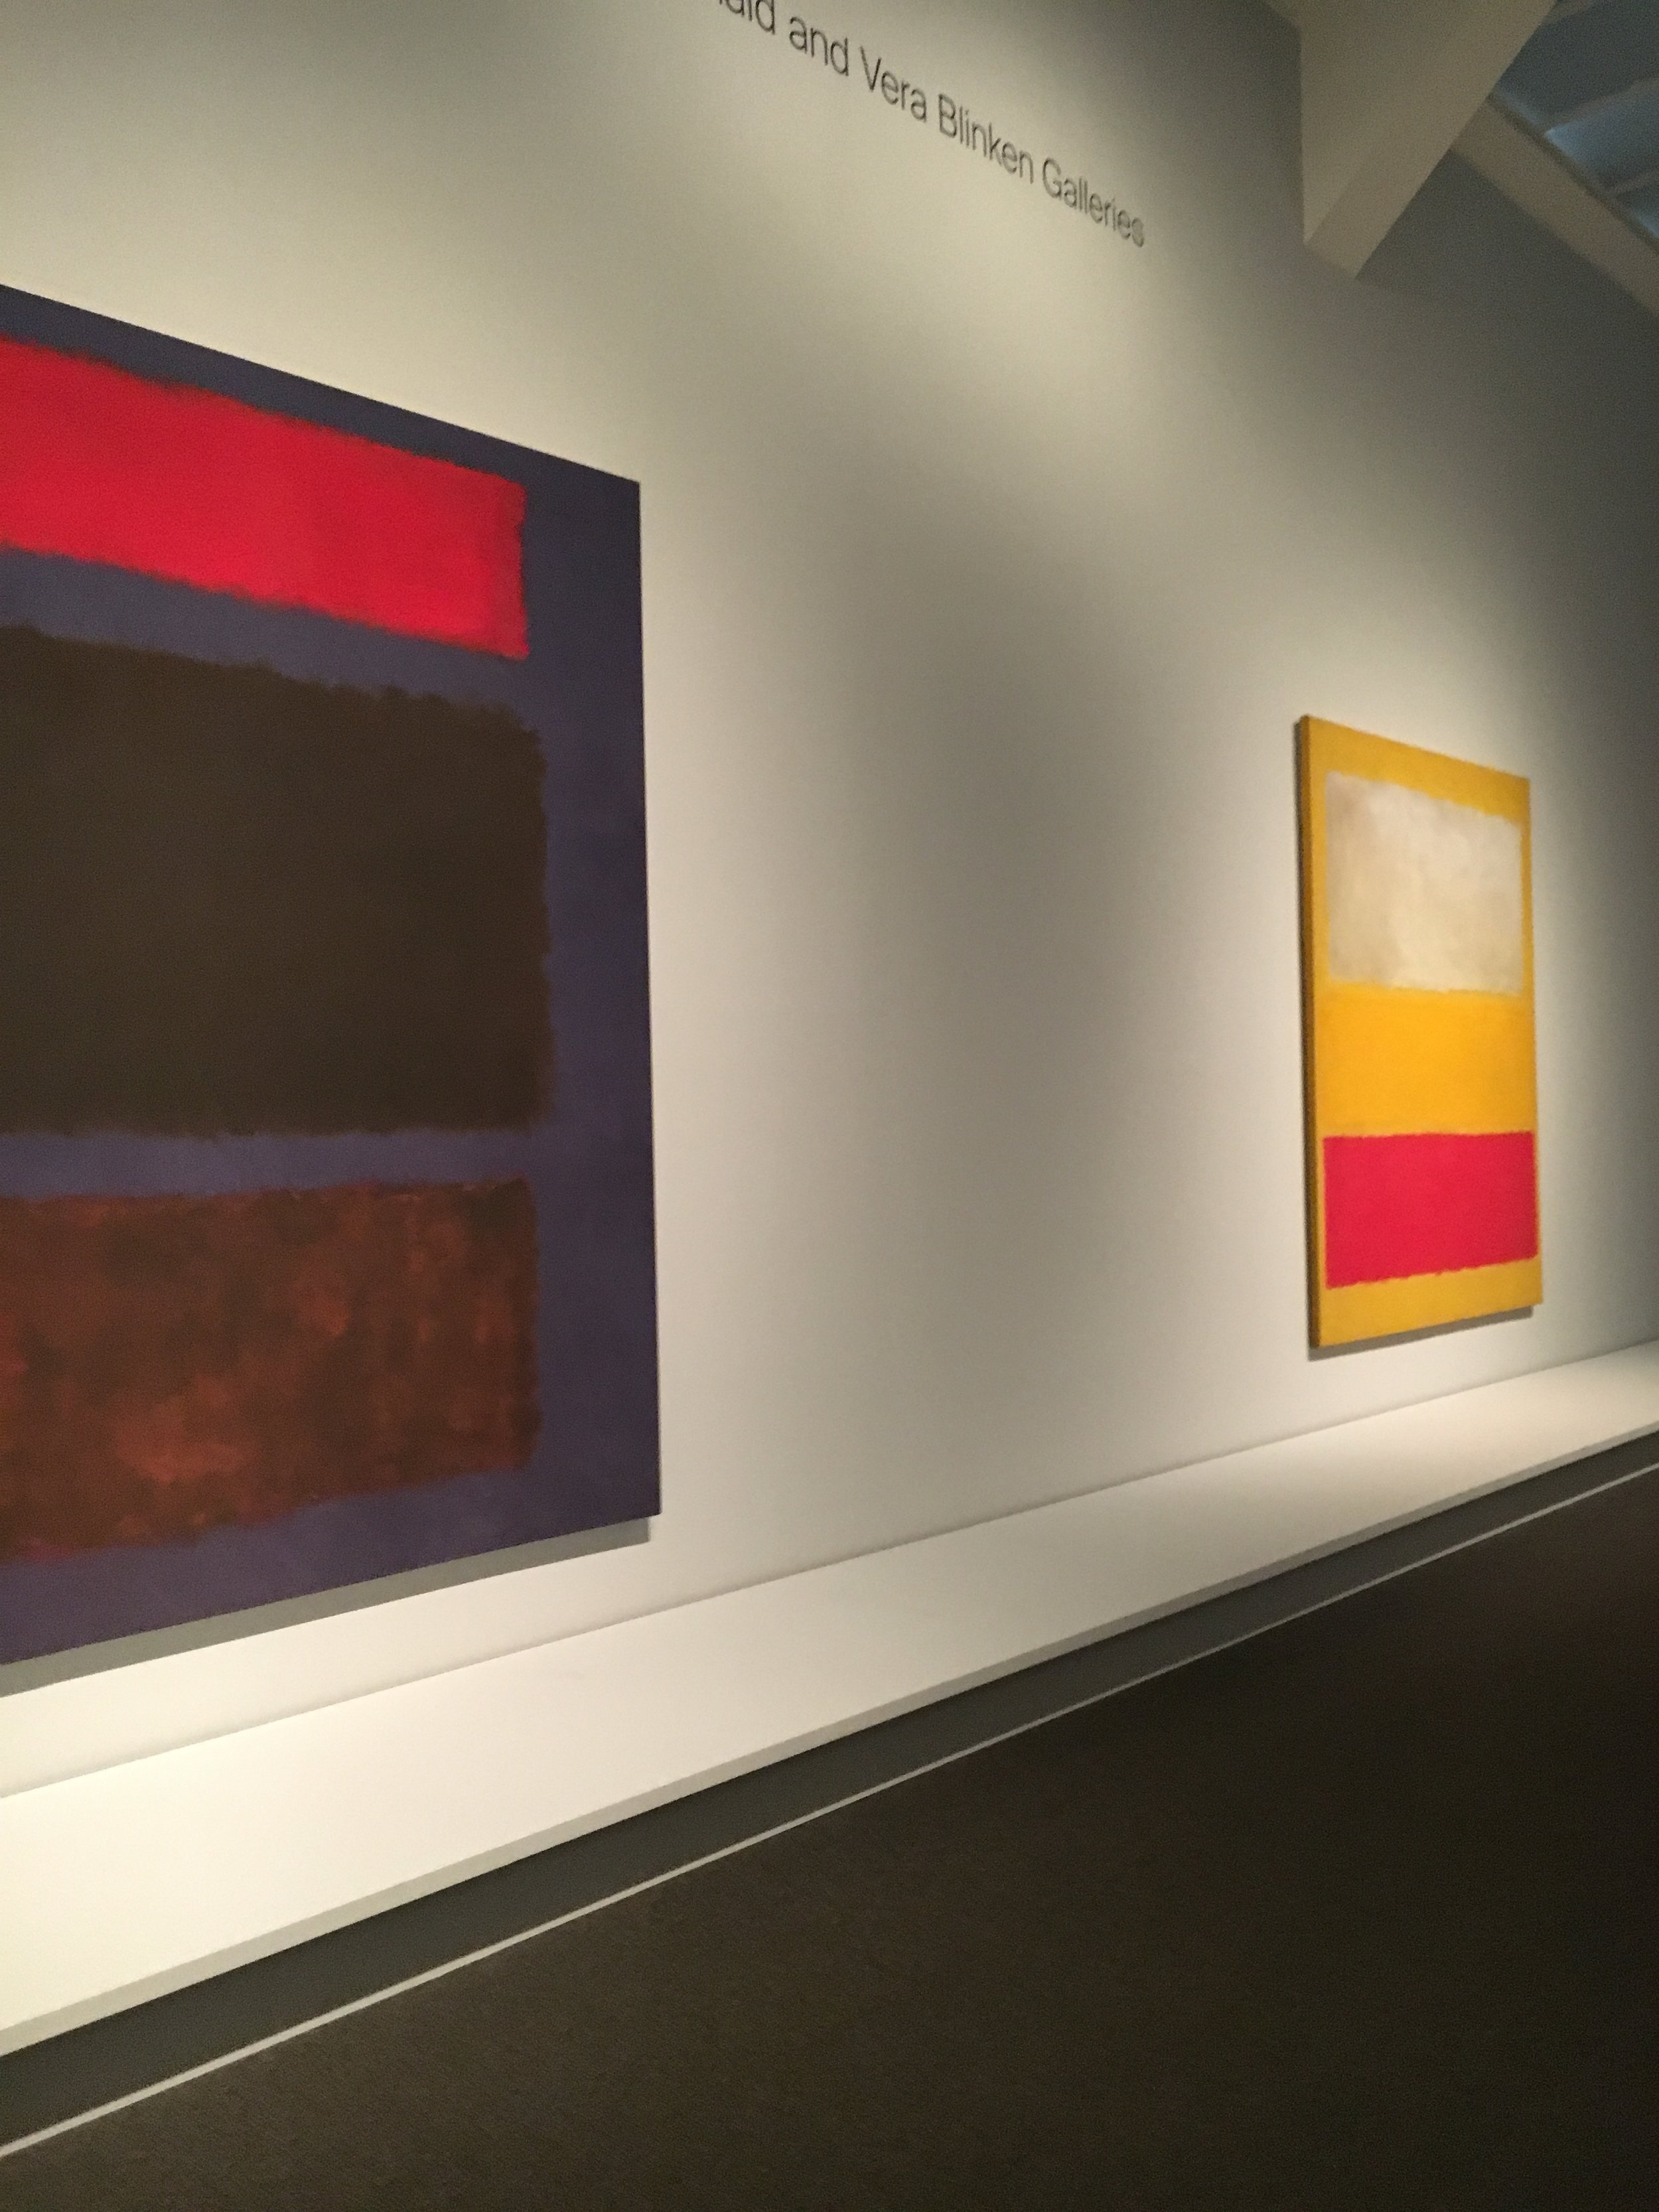 - Visiting Rothko's at the MET in NYC